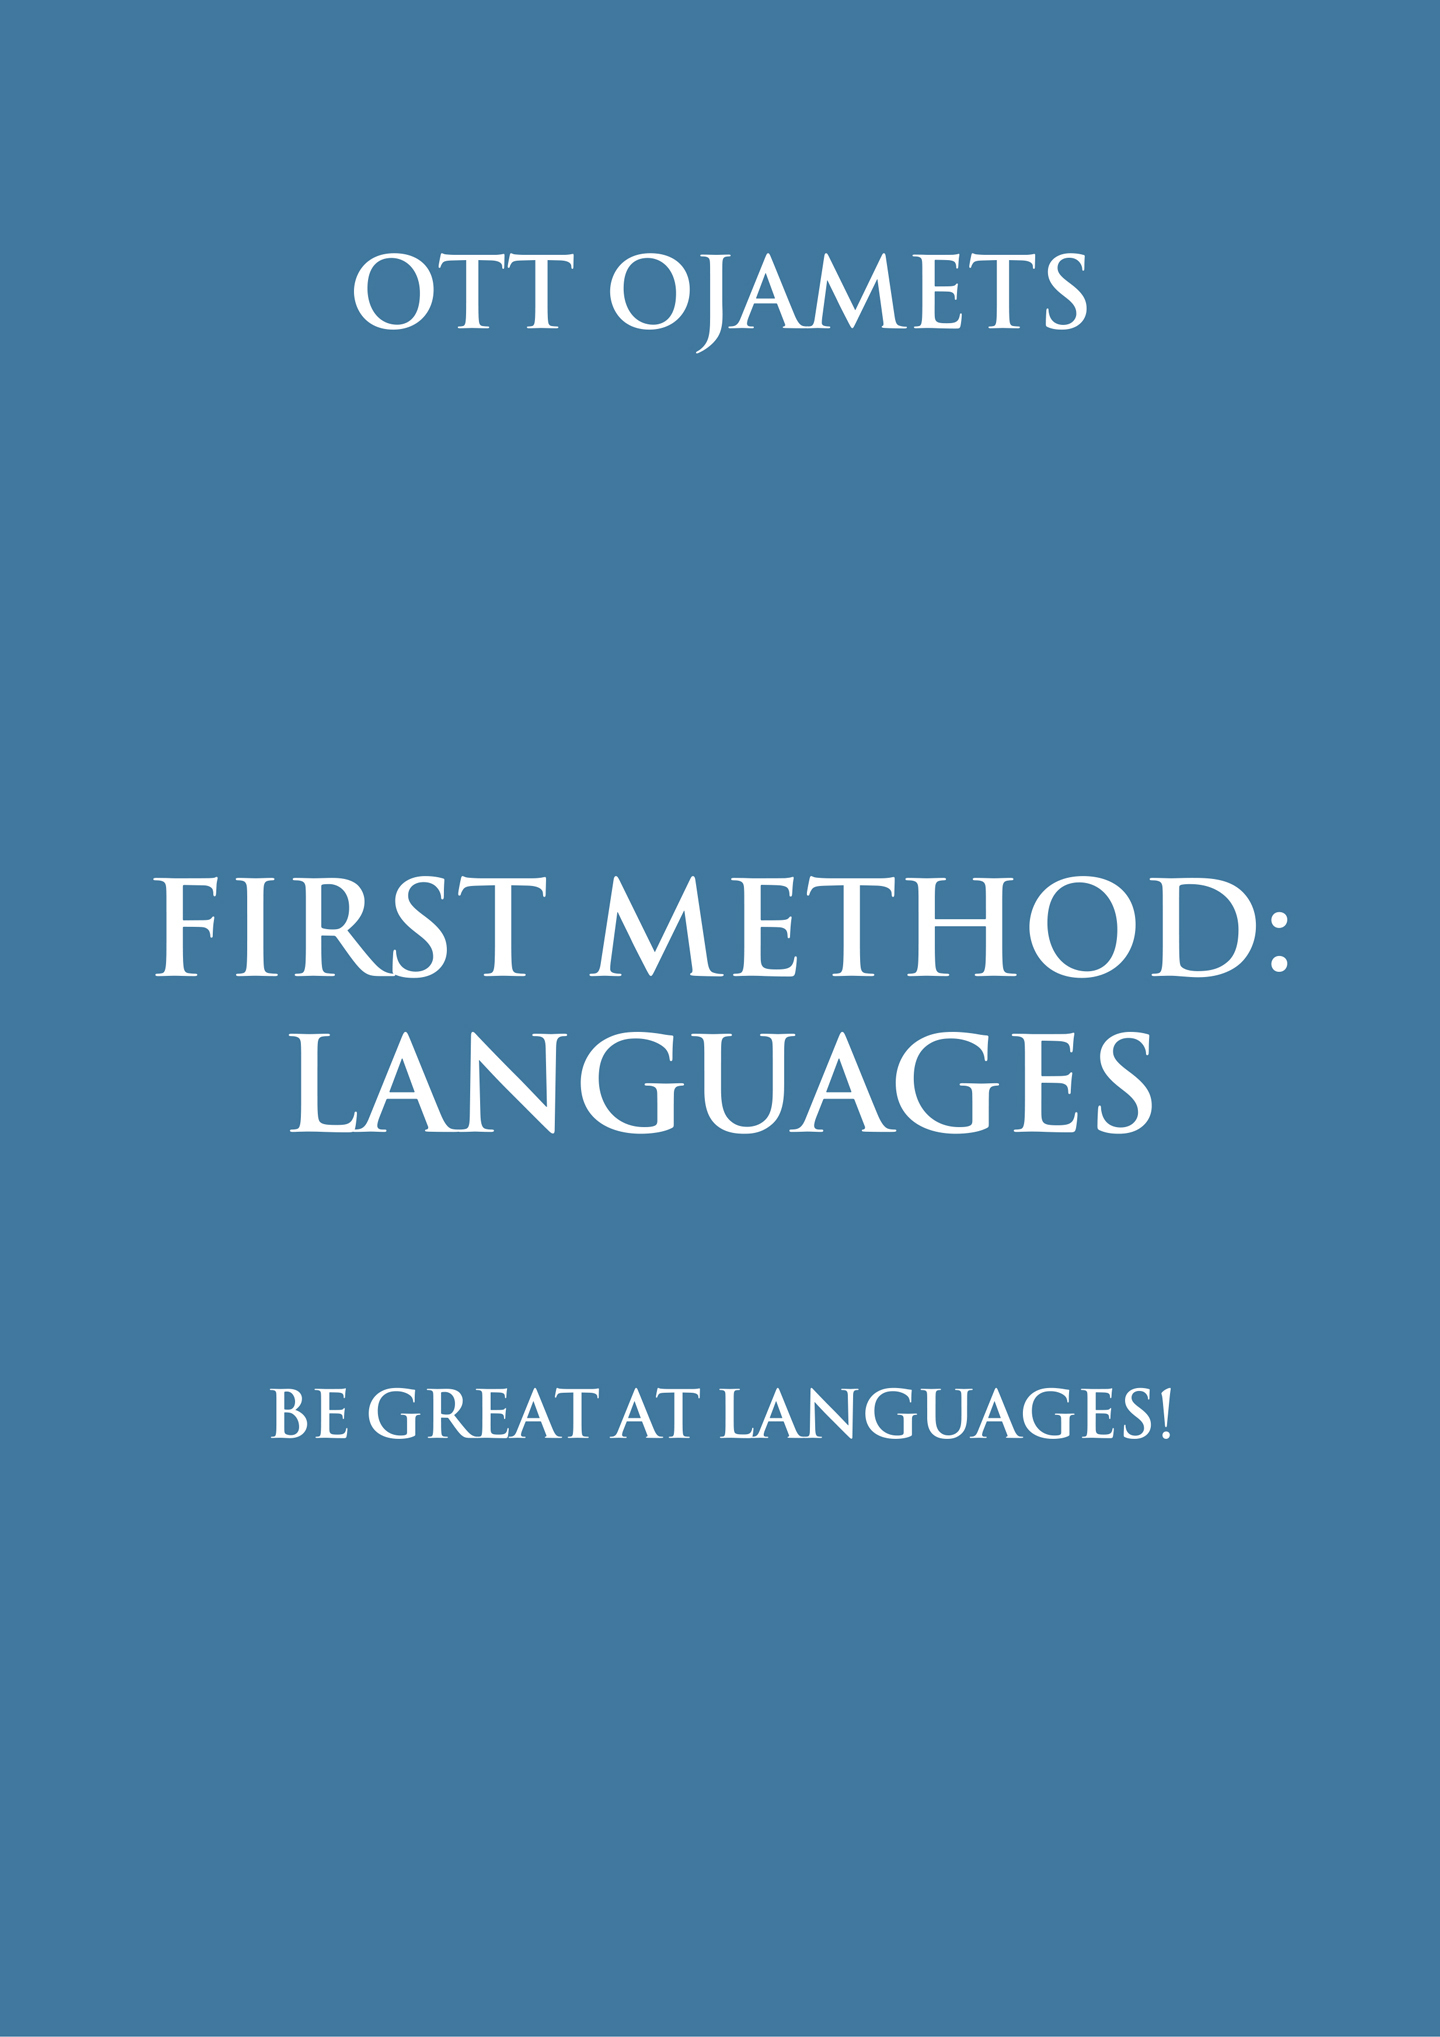 First Method: Languages